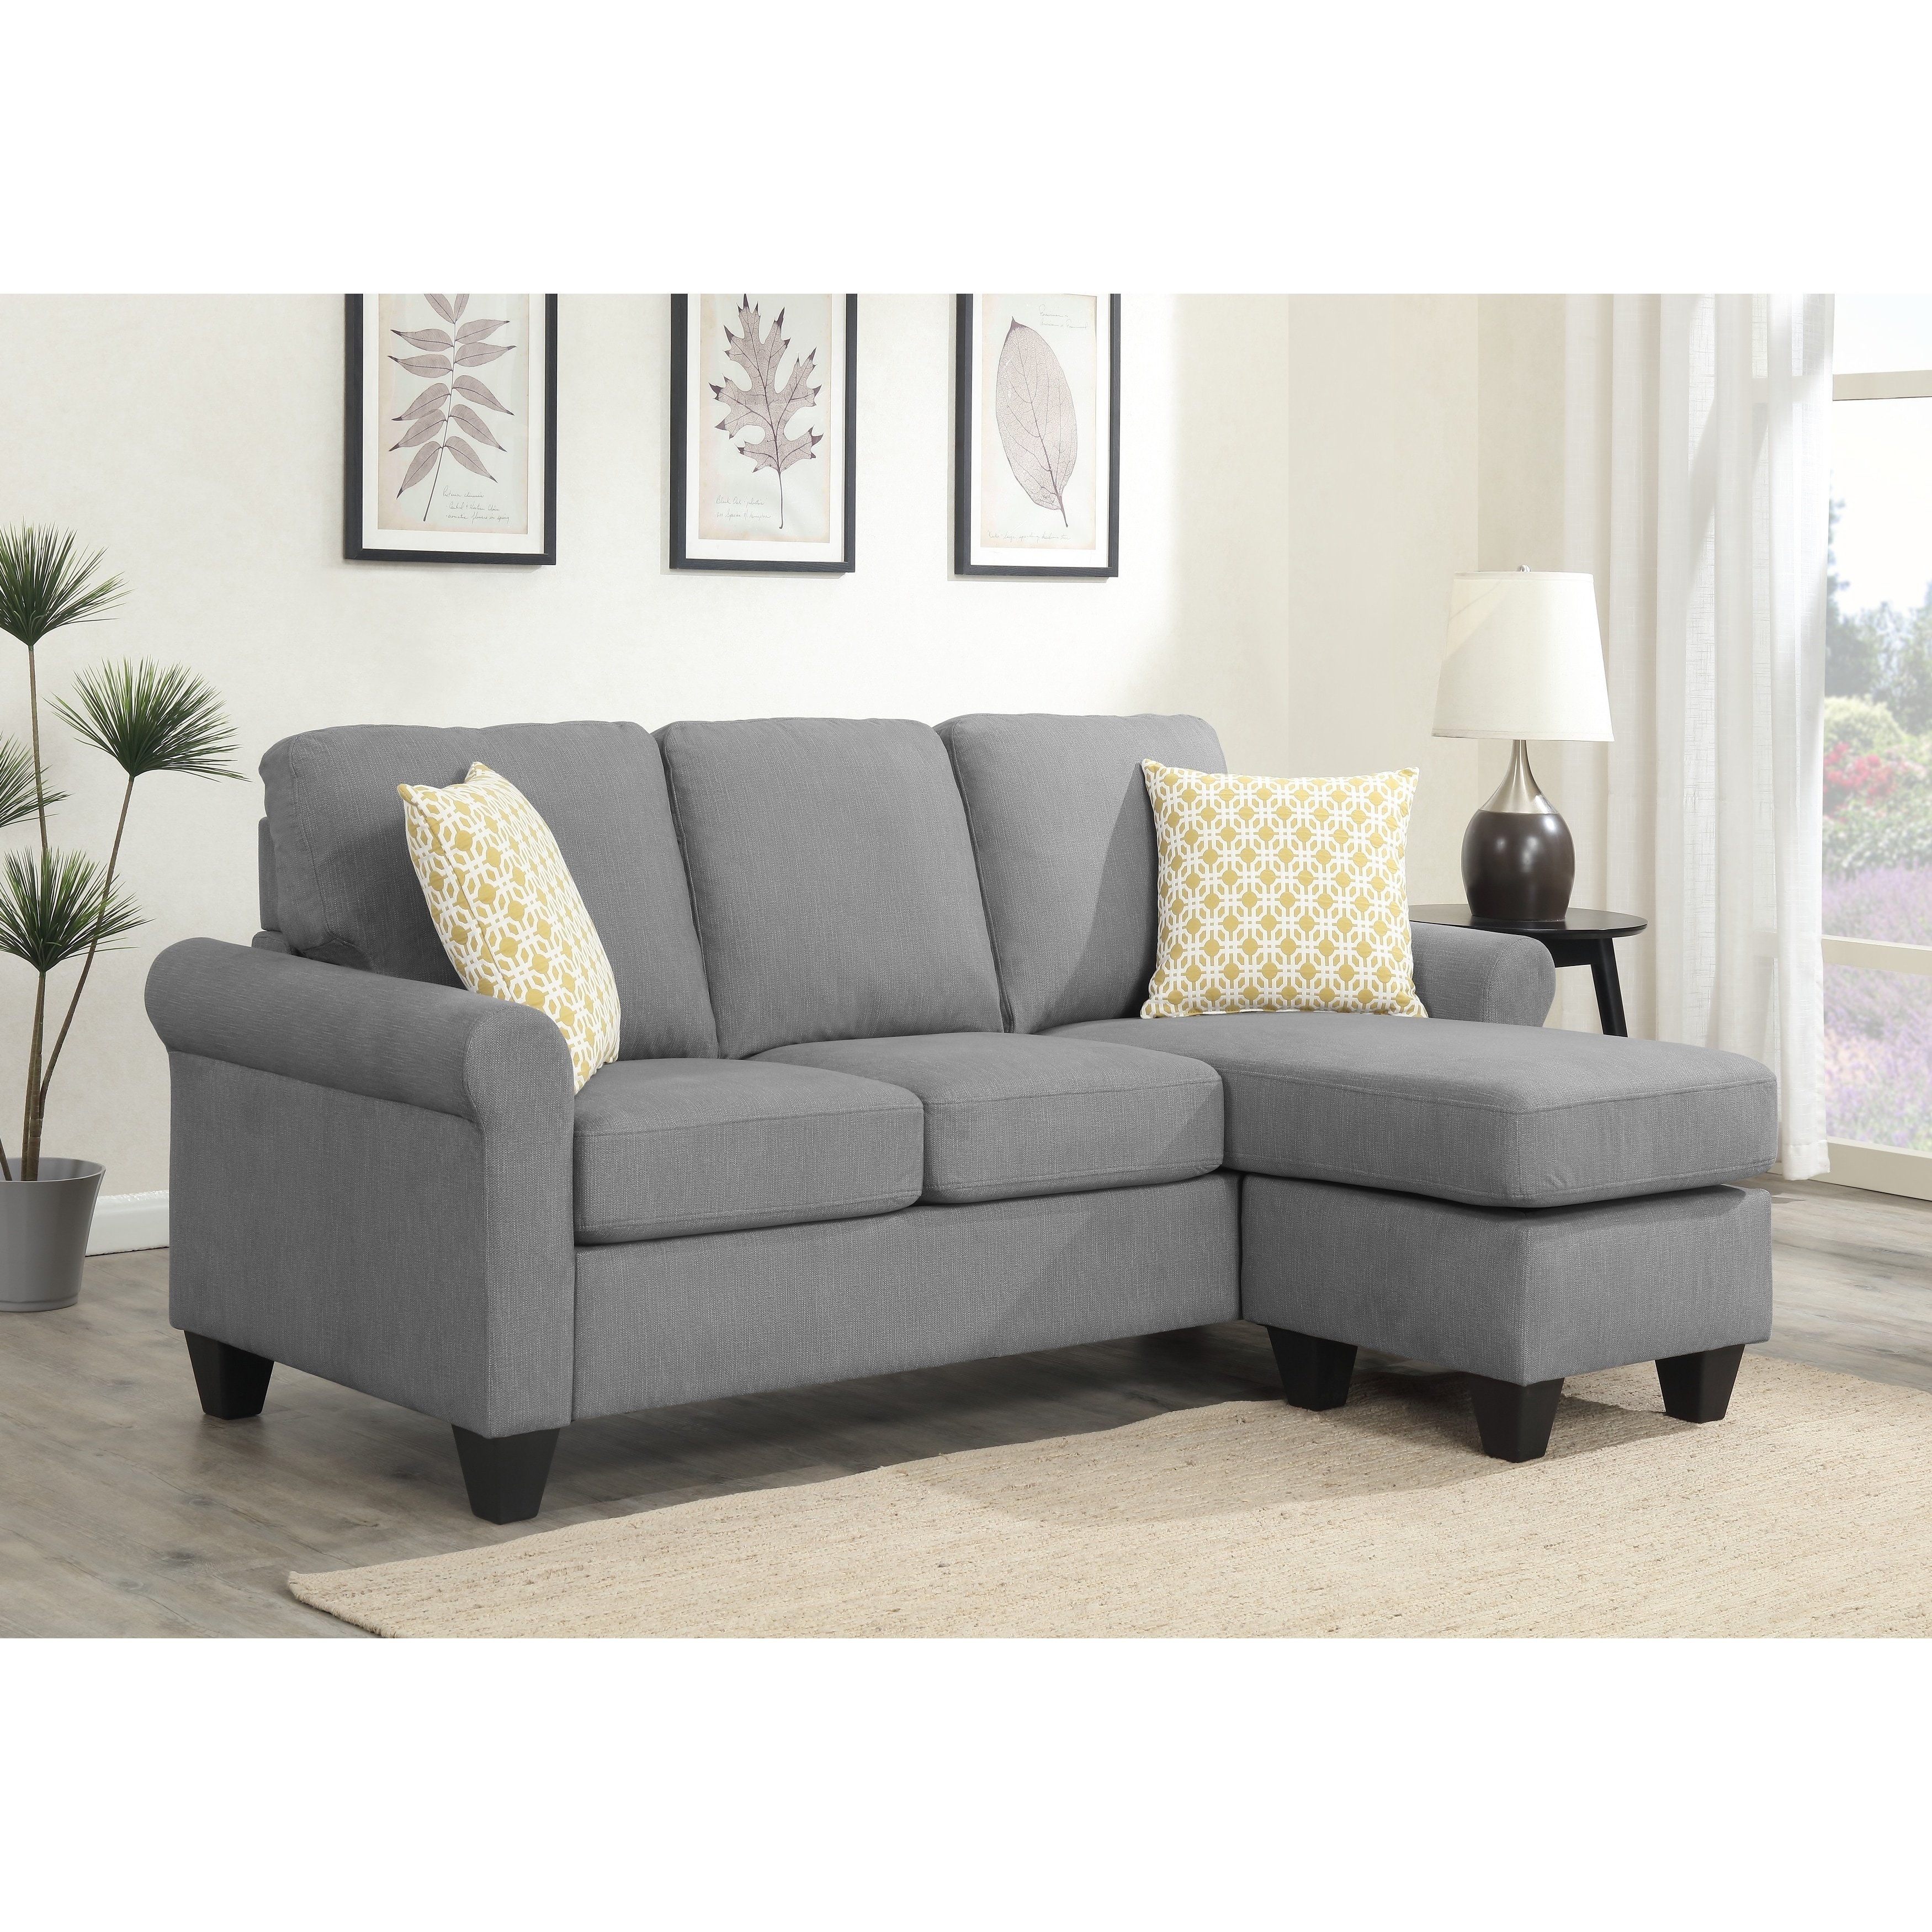 emerald home claudette soft gray reversible sectional with pillows reconfigurable sectional to sofa with ottoman